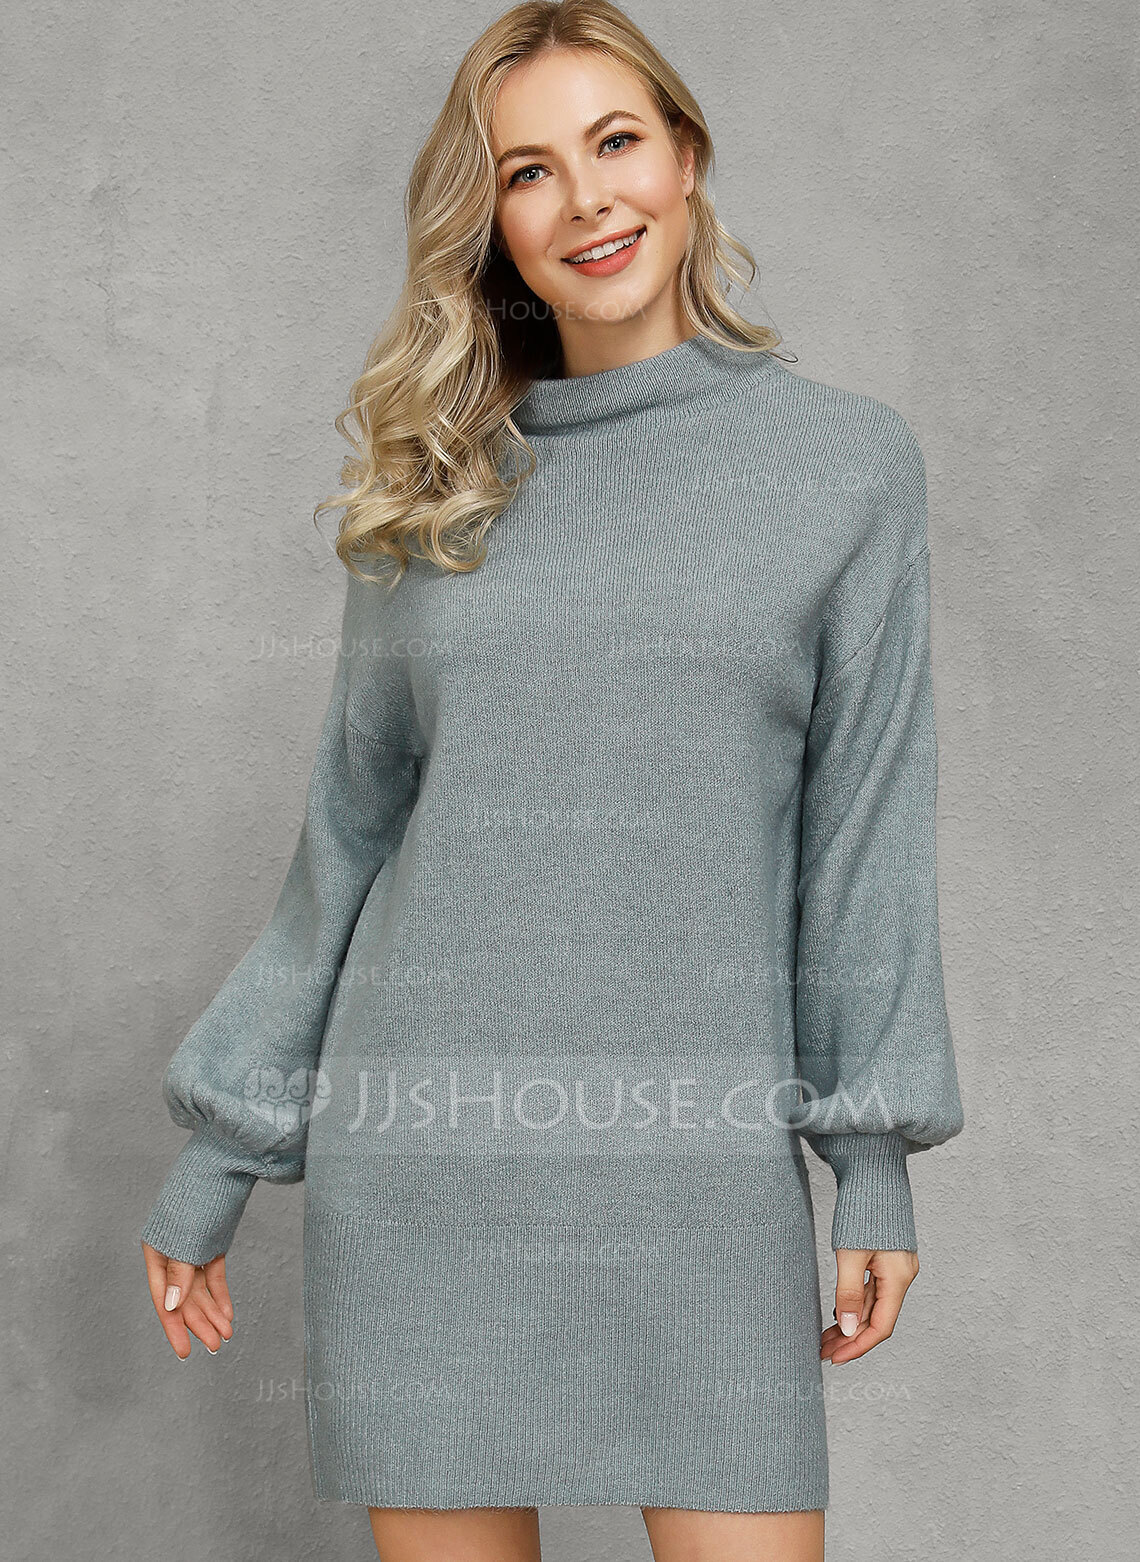 Ribbed Chunky knit Solid Polyester Round Neck Sweater Dresses Sweaters